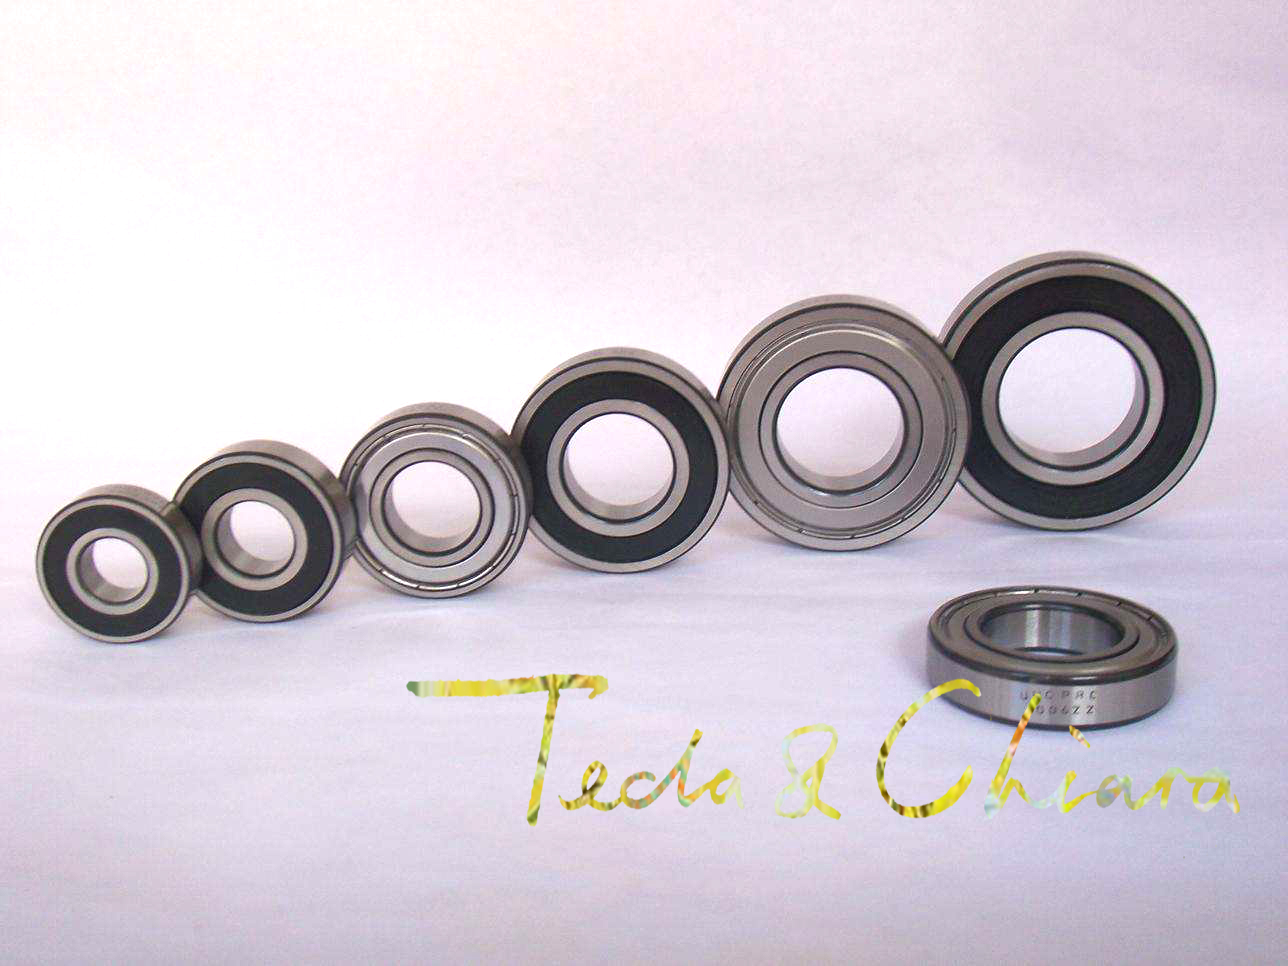 6004 6004ZZ 6004RS 6004-2Z 6004Z 6004-2RS ZZ RS RZ 2RZ Deep Groove Ball Bearings 20 x 42 x 12mm High Quality 6704 6704zz 6704rs 6704 2z 6704z 6704 2rs zz rs rz 2rz deep groove ball bearings 20 x 27 x 4mm high quality